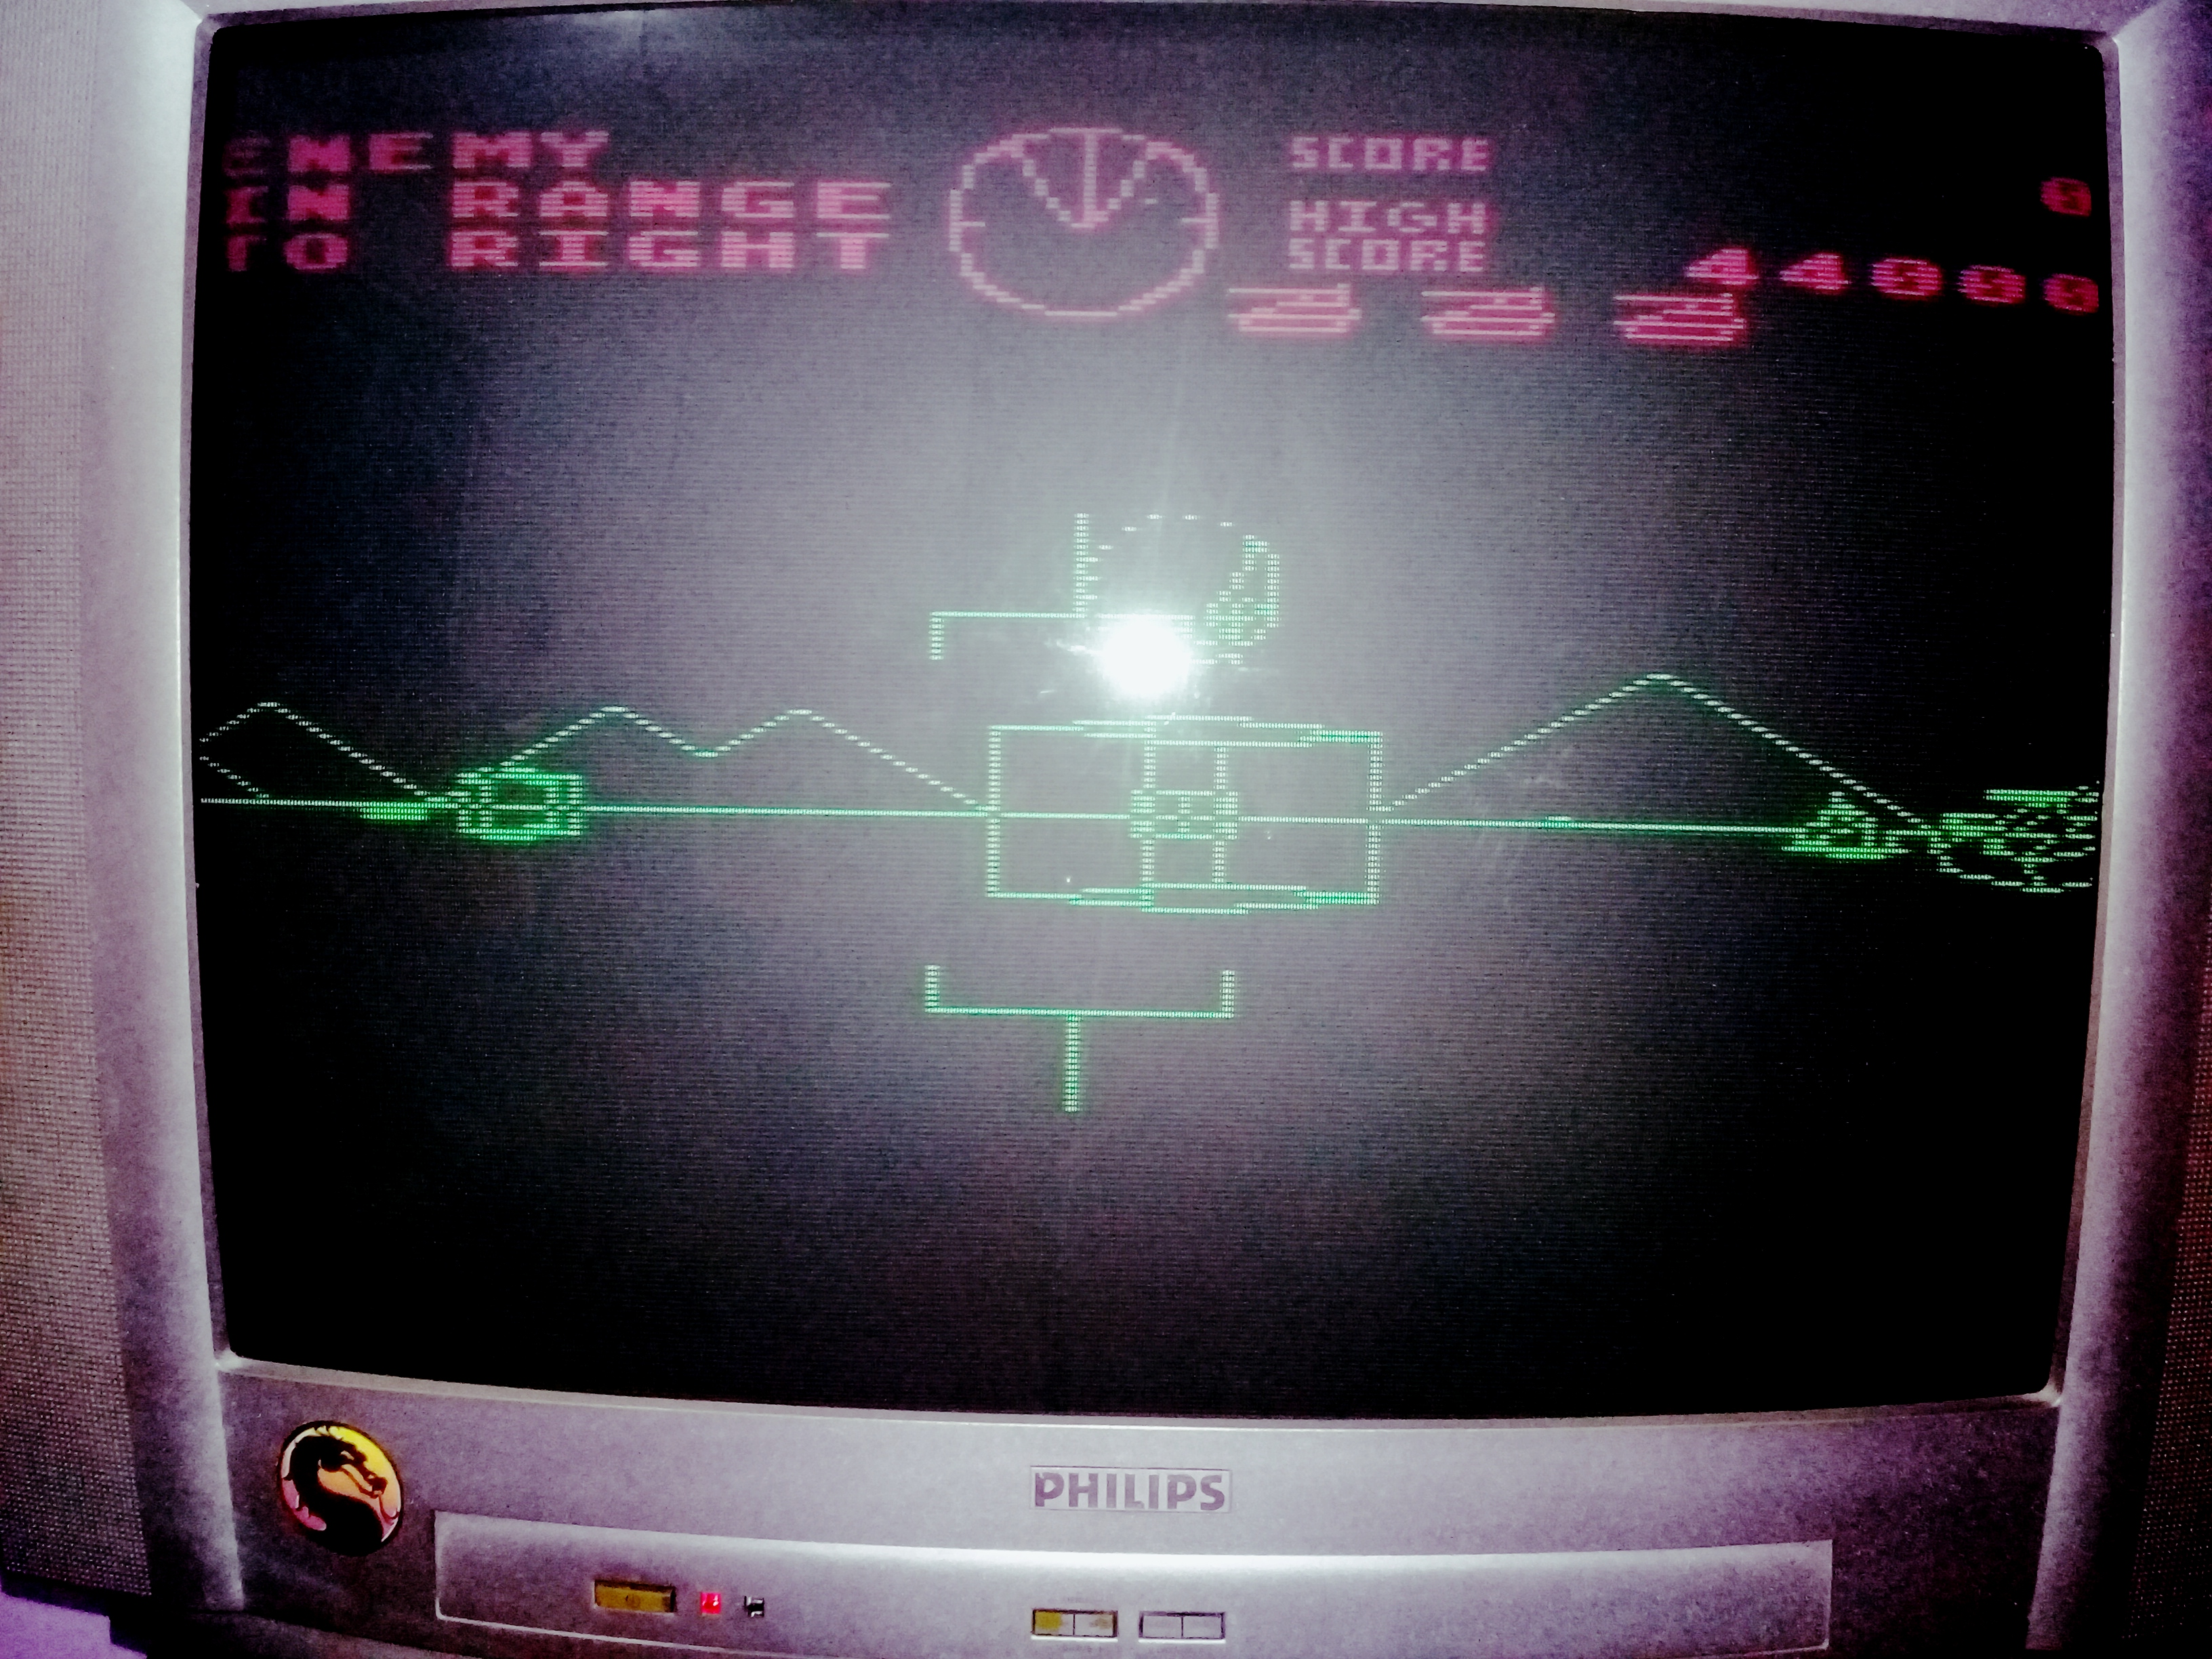 omargeddon: Battlezone [Level 4] (Atari 400/800/XL/XE) 44,000 points on 2020-09-06 01:28:45